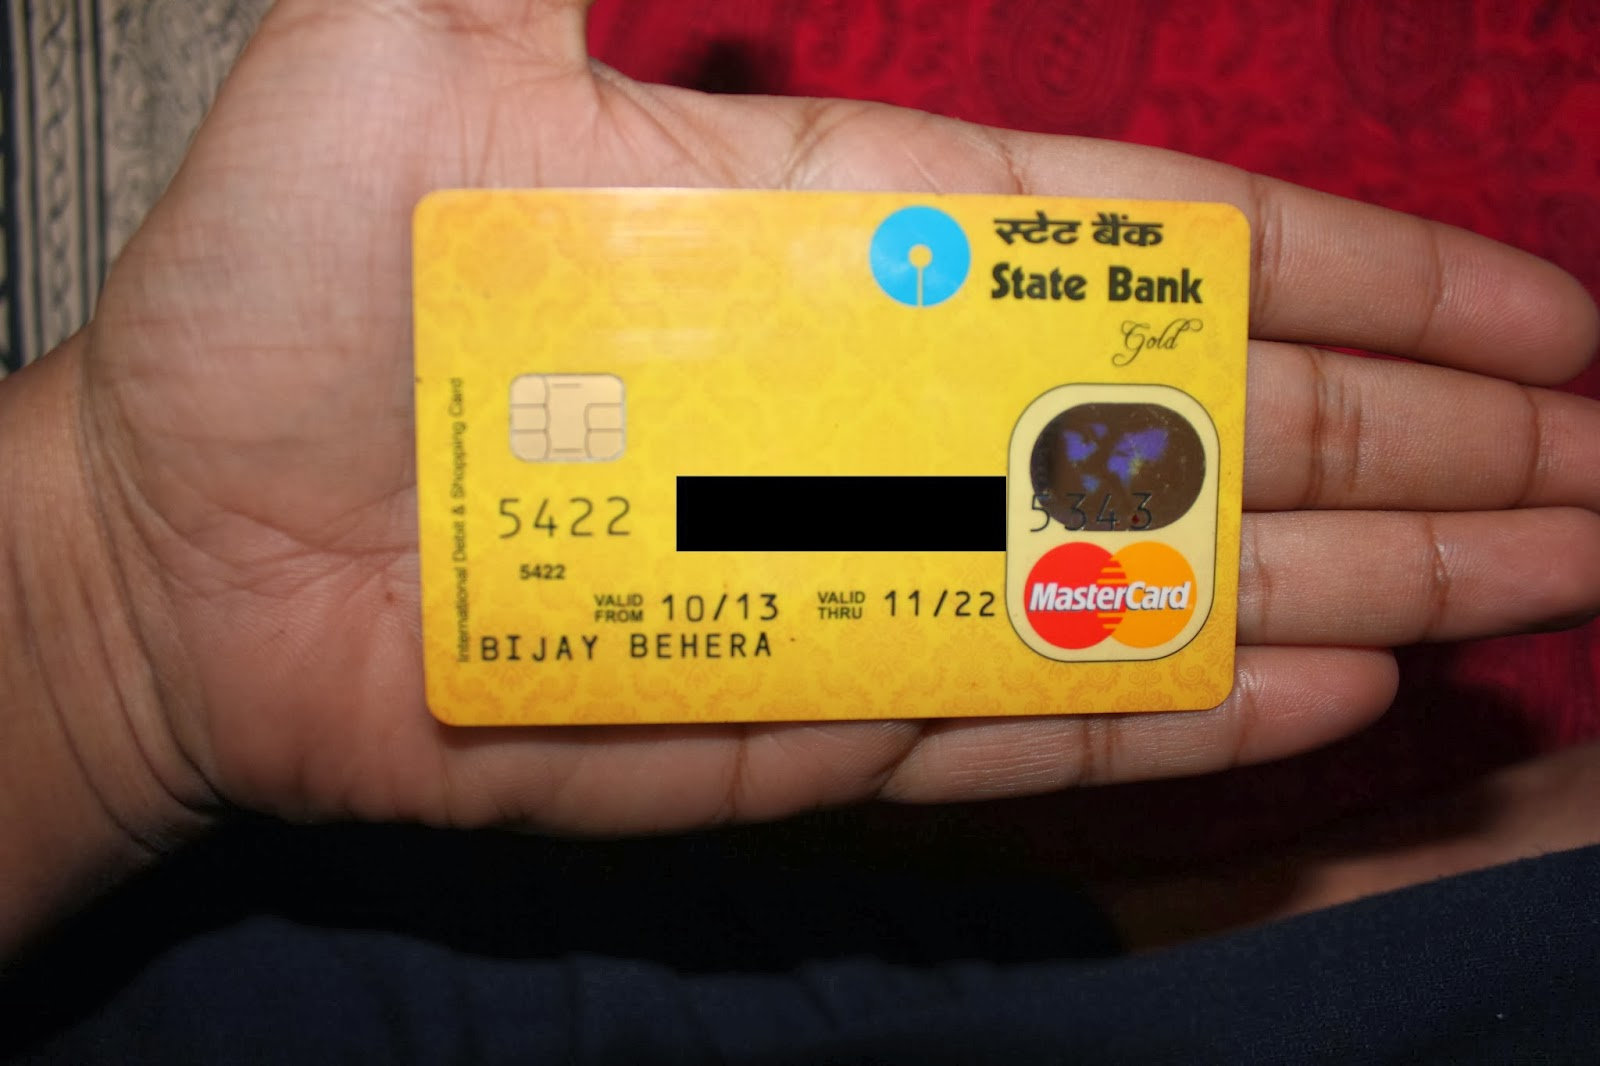 SBI deactivates insecure ATM cards, go check yours